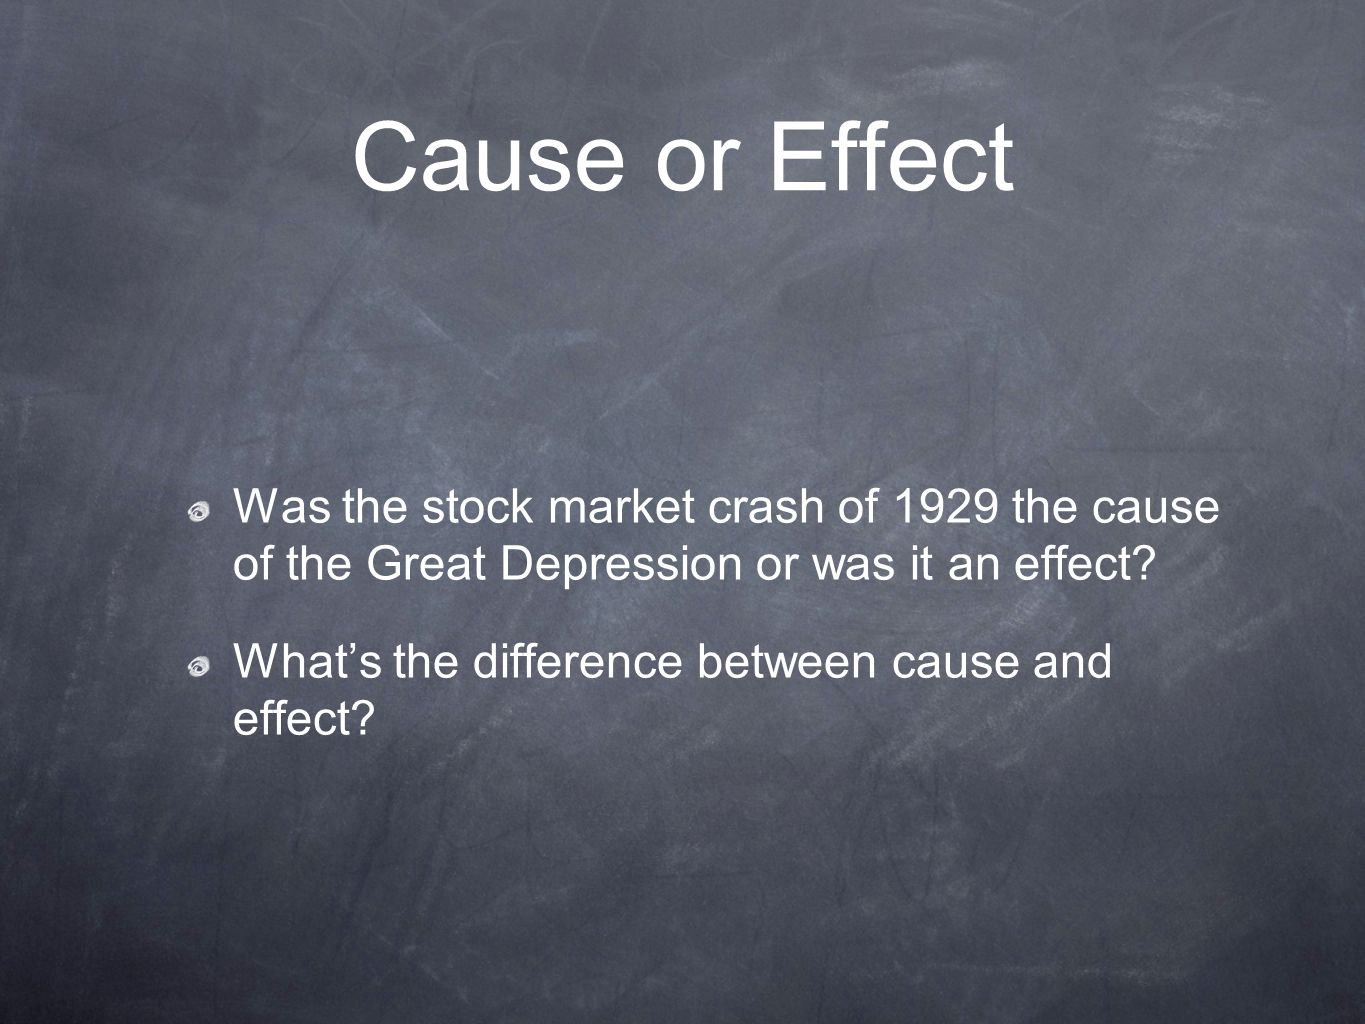 the great depression case of 1929 The stock market crash of 1929 signaled the great depression the facts behind what happened, its causes and its effects the stock market crash of 1929 signaled the great depression 1929 - the hatry case threw british markets into panic.